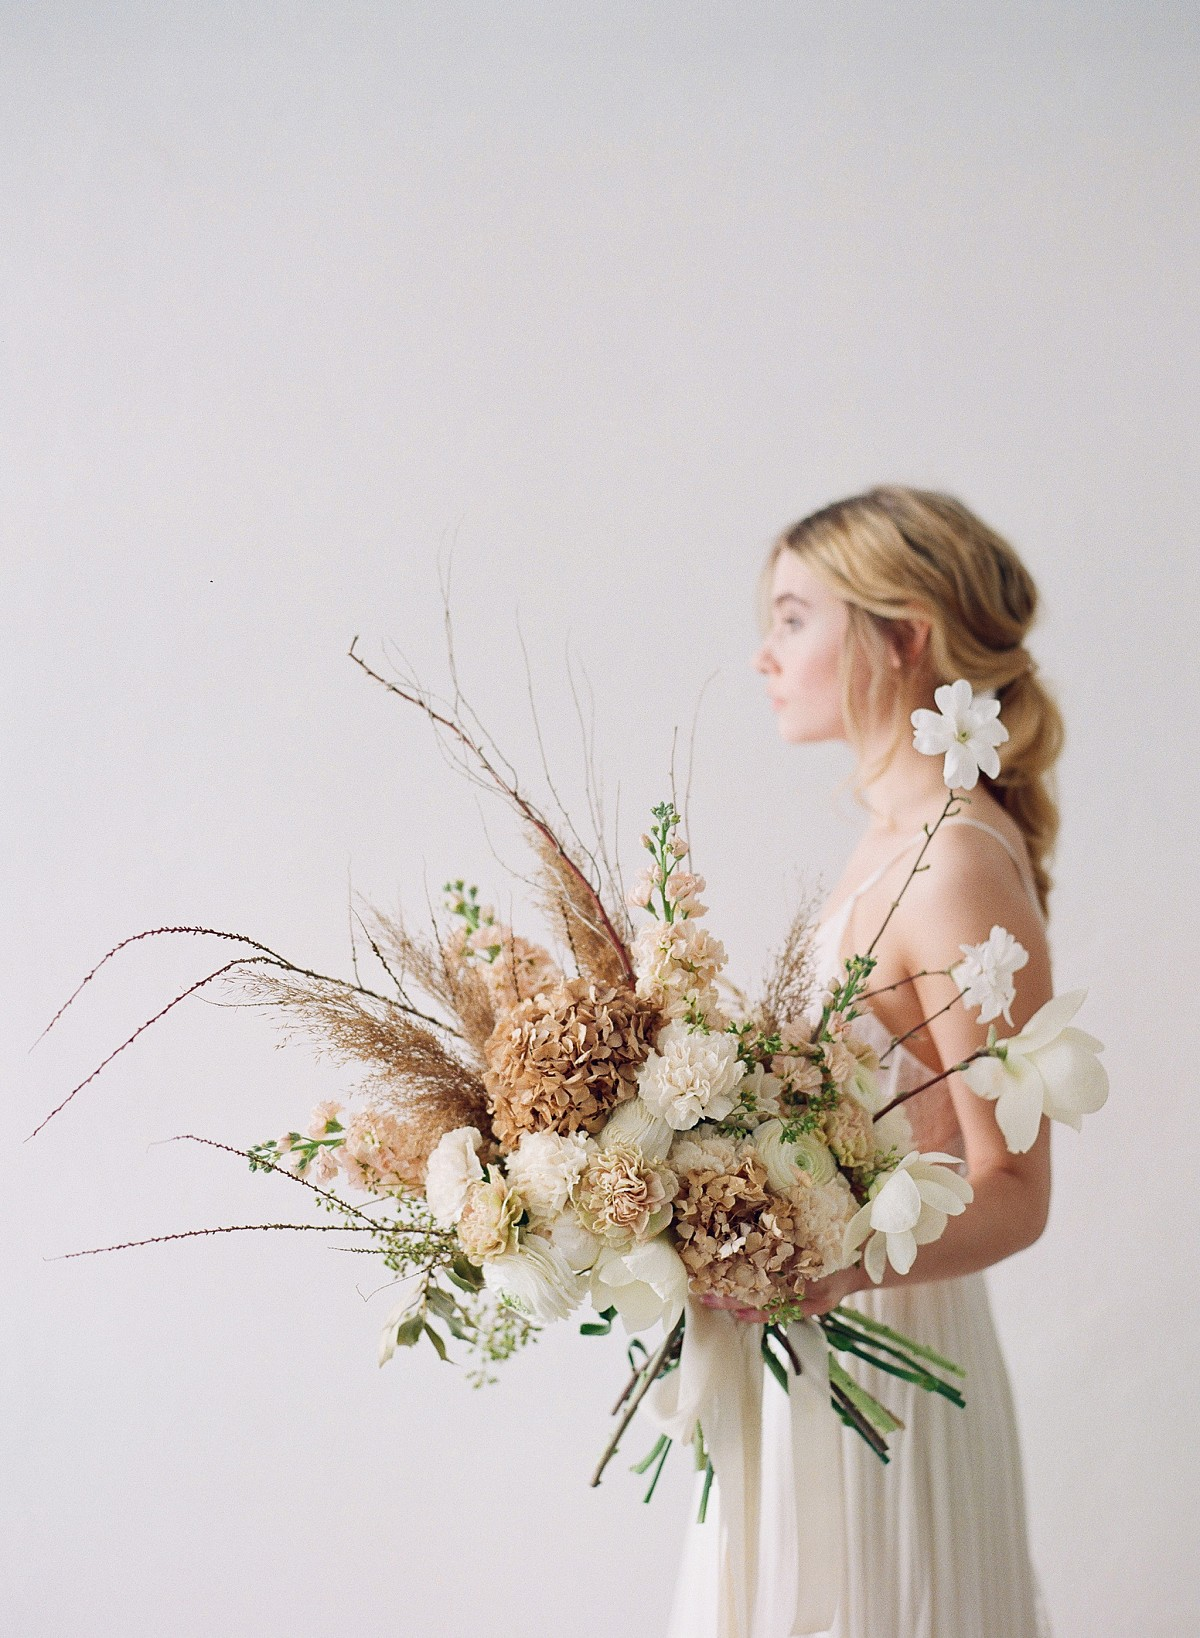 Dried flowers in wedding bouquets